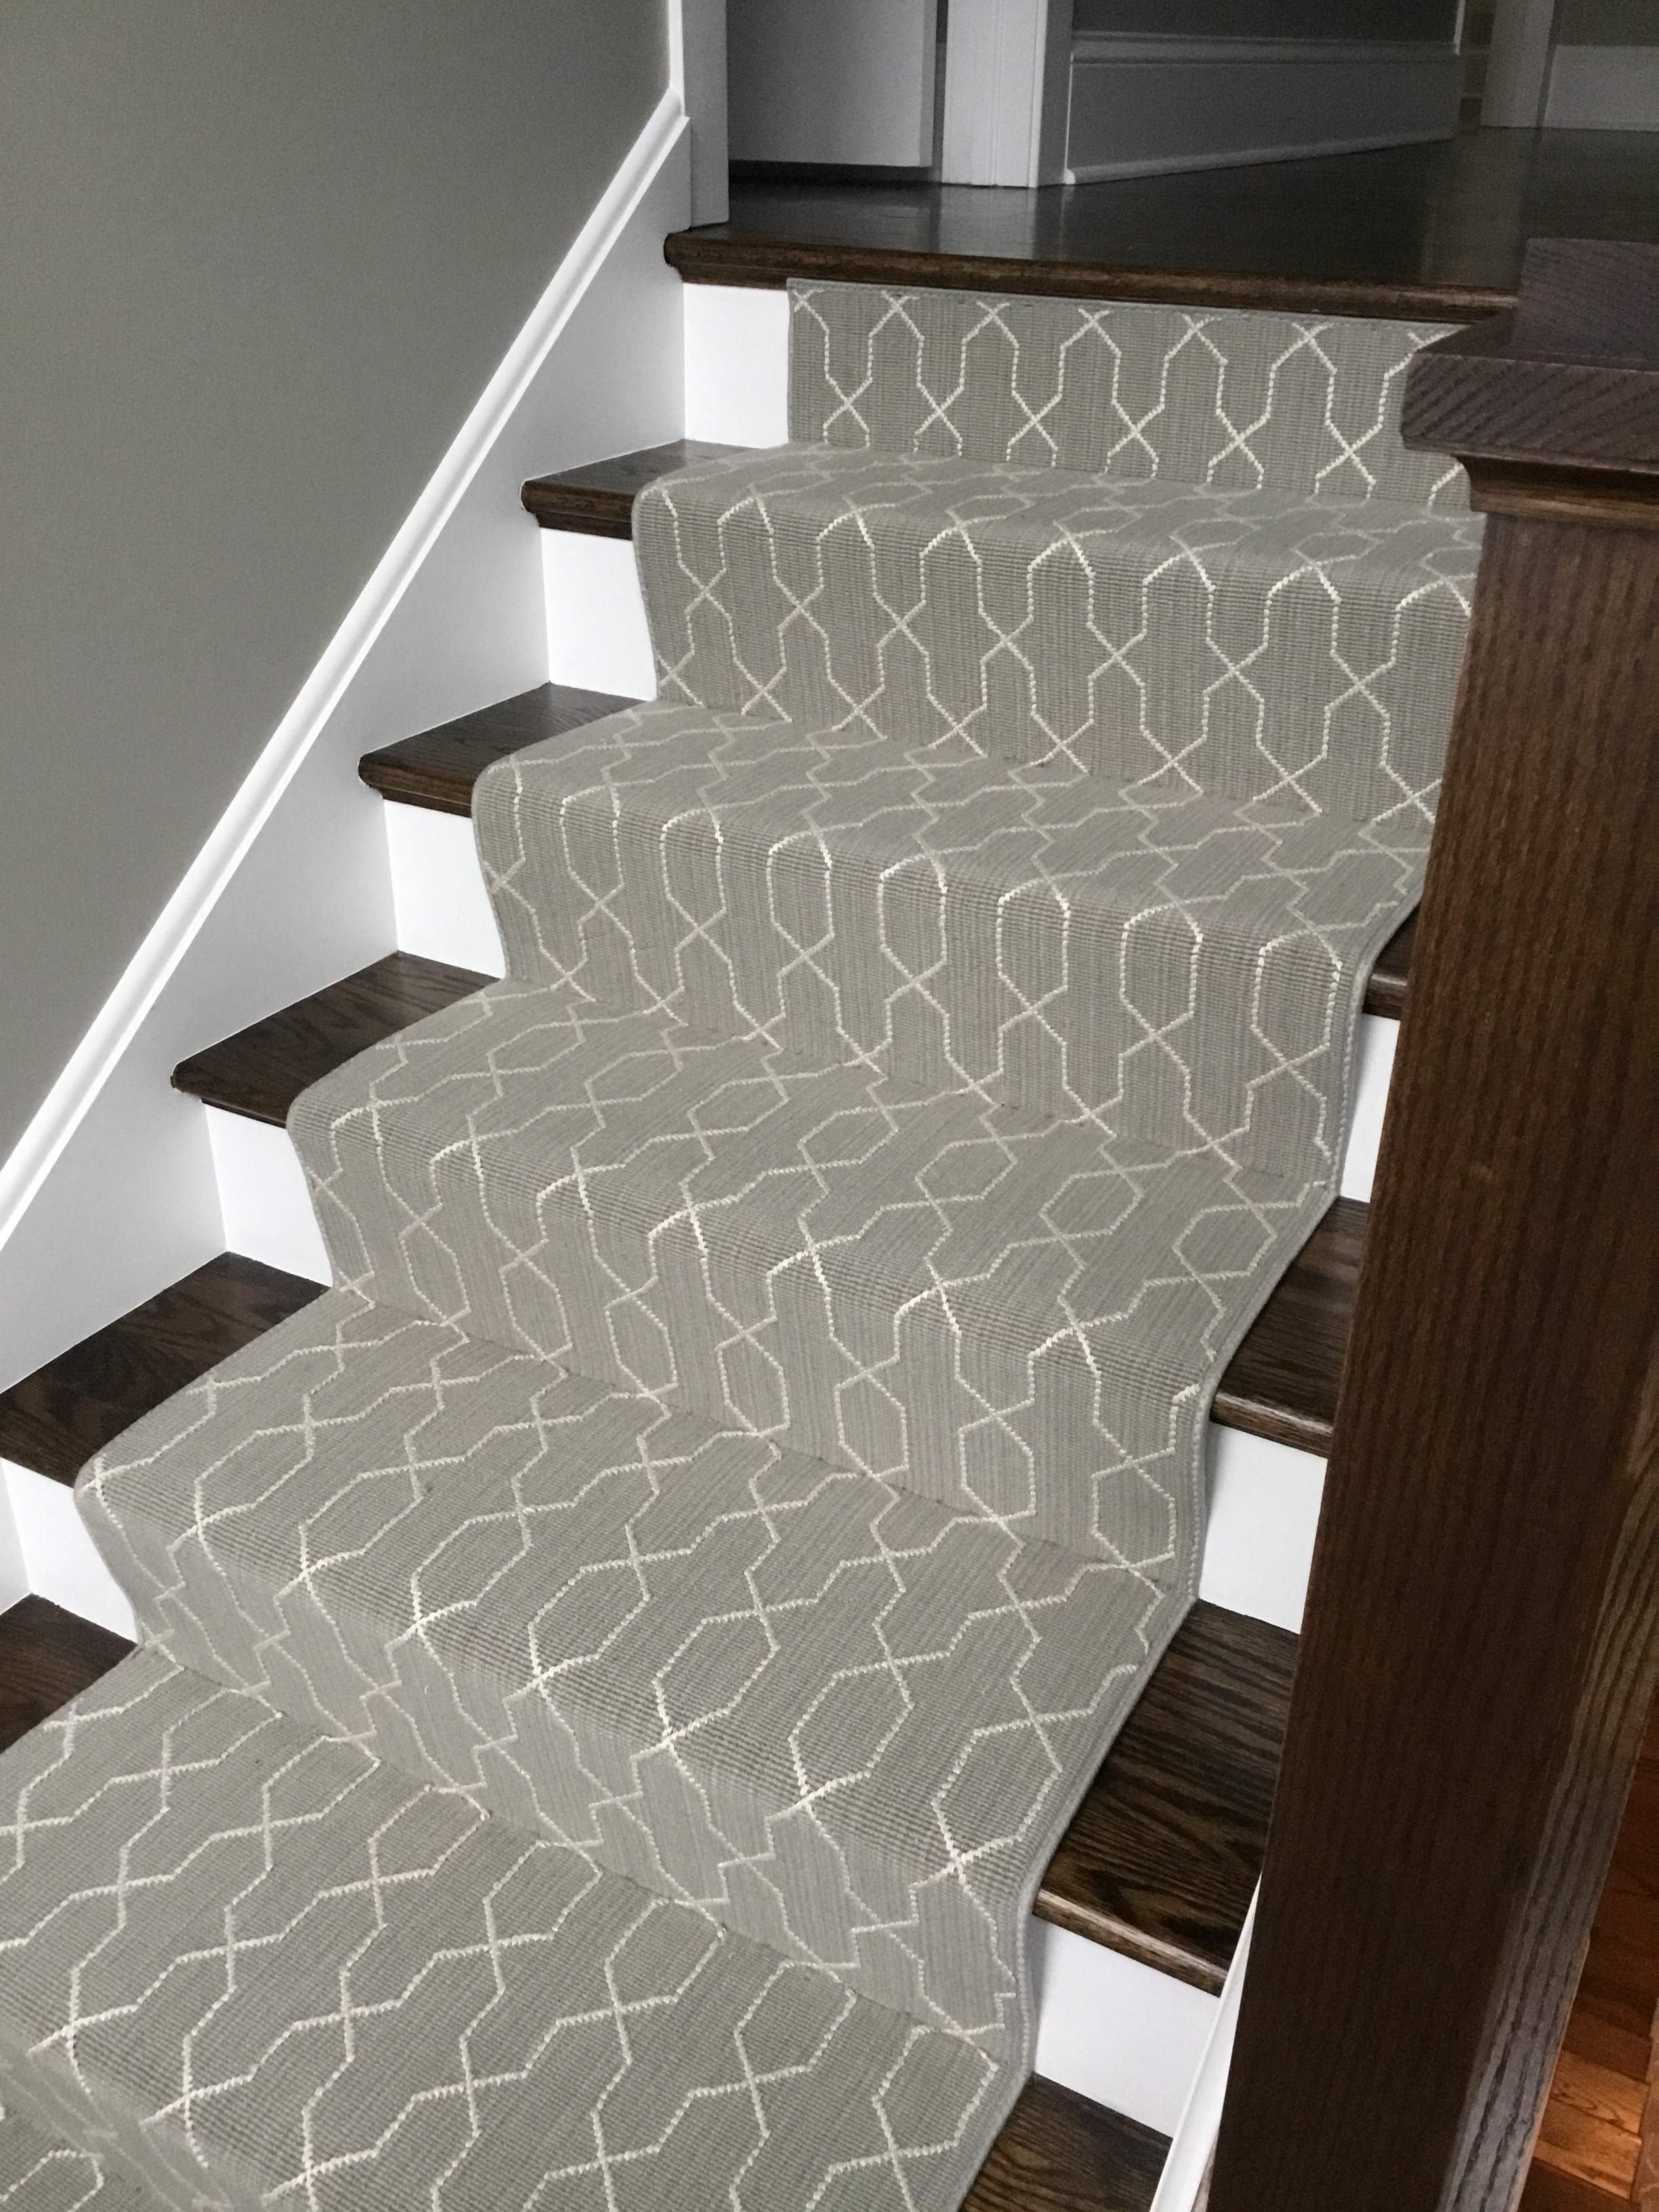 Stair Carpet Gain Inspiration And View Stair Carpet Projects